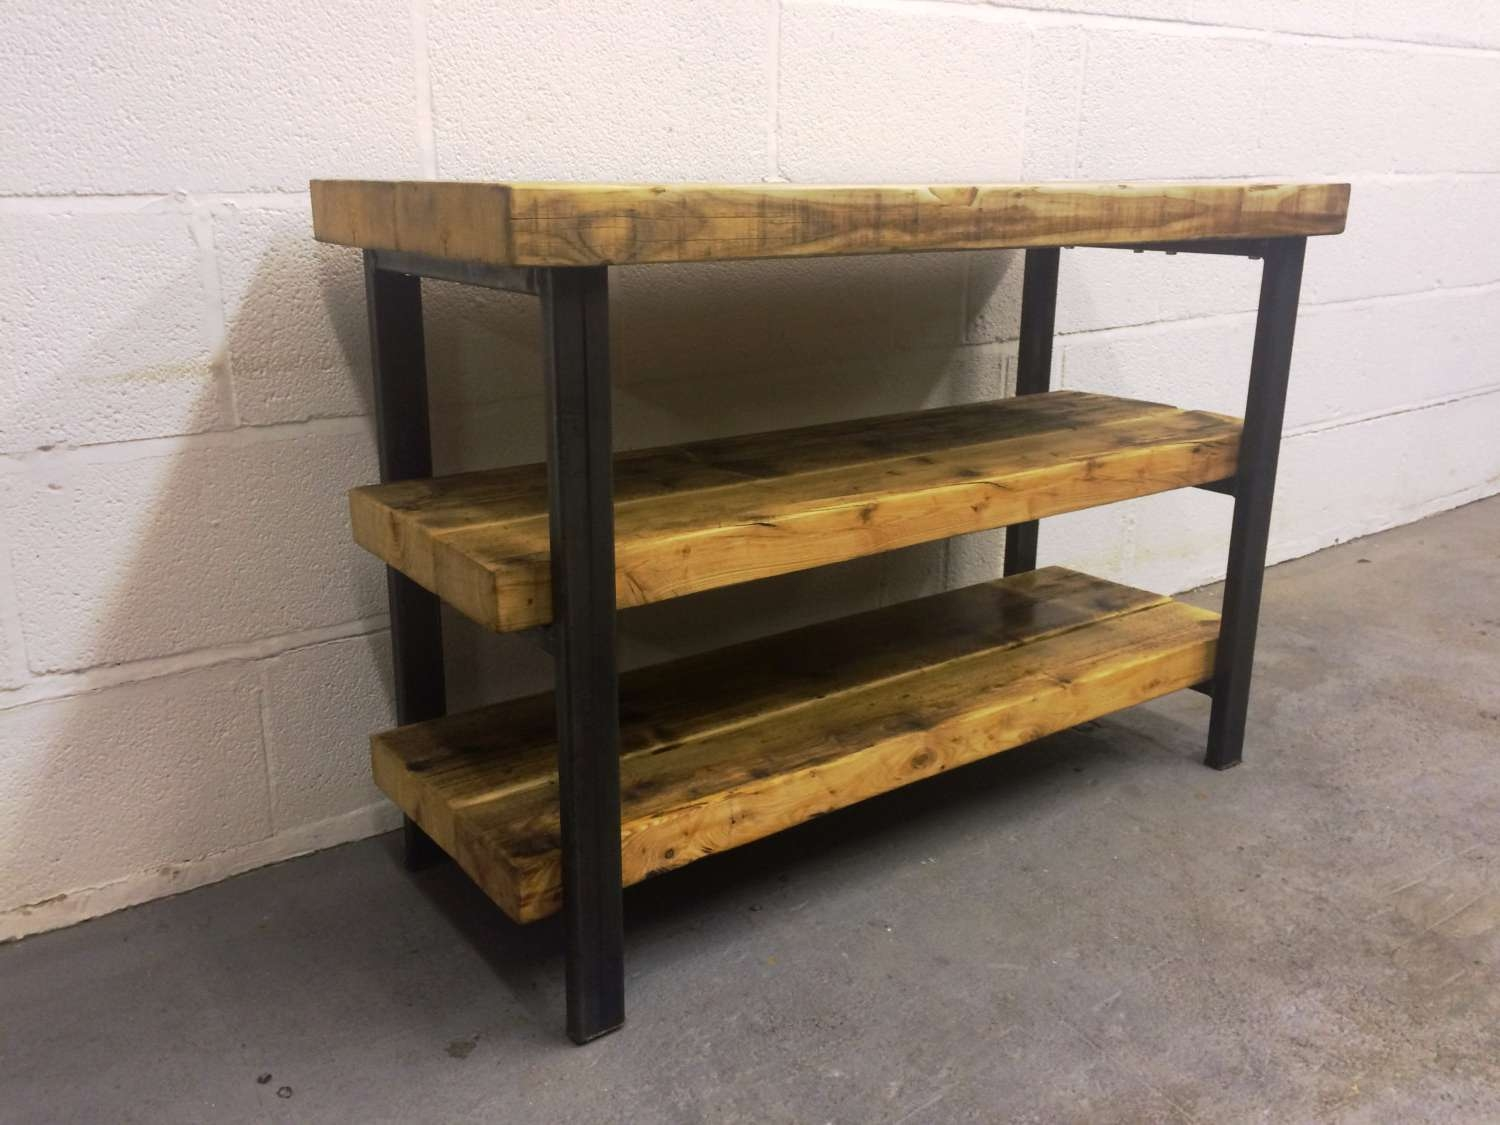 Industrial Chic Reclaimed Tv Stand Media Centre Coffee Table Inside Industrial Metal Tv Stands (View 6 of 15)